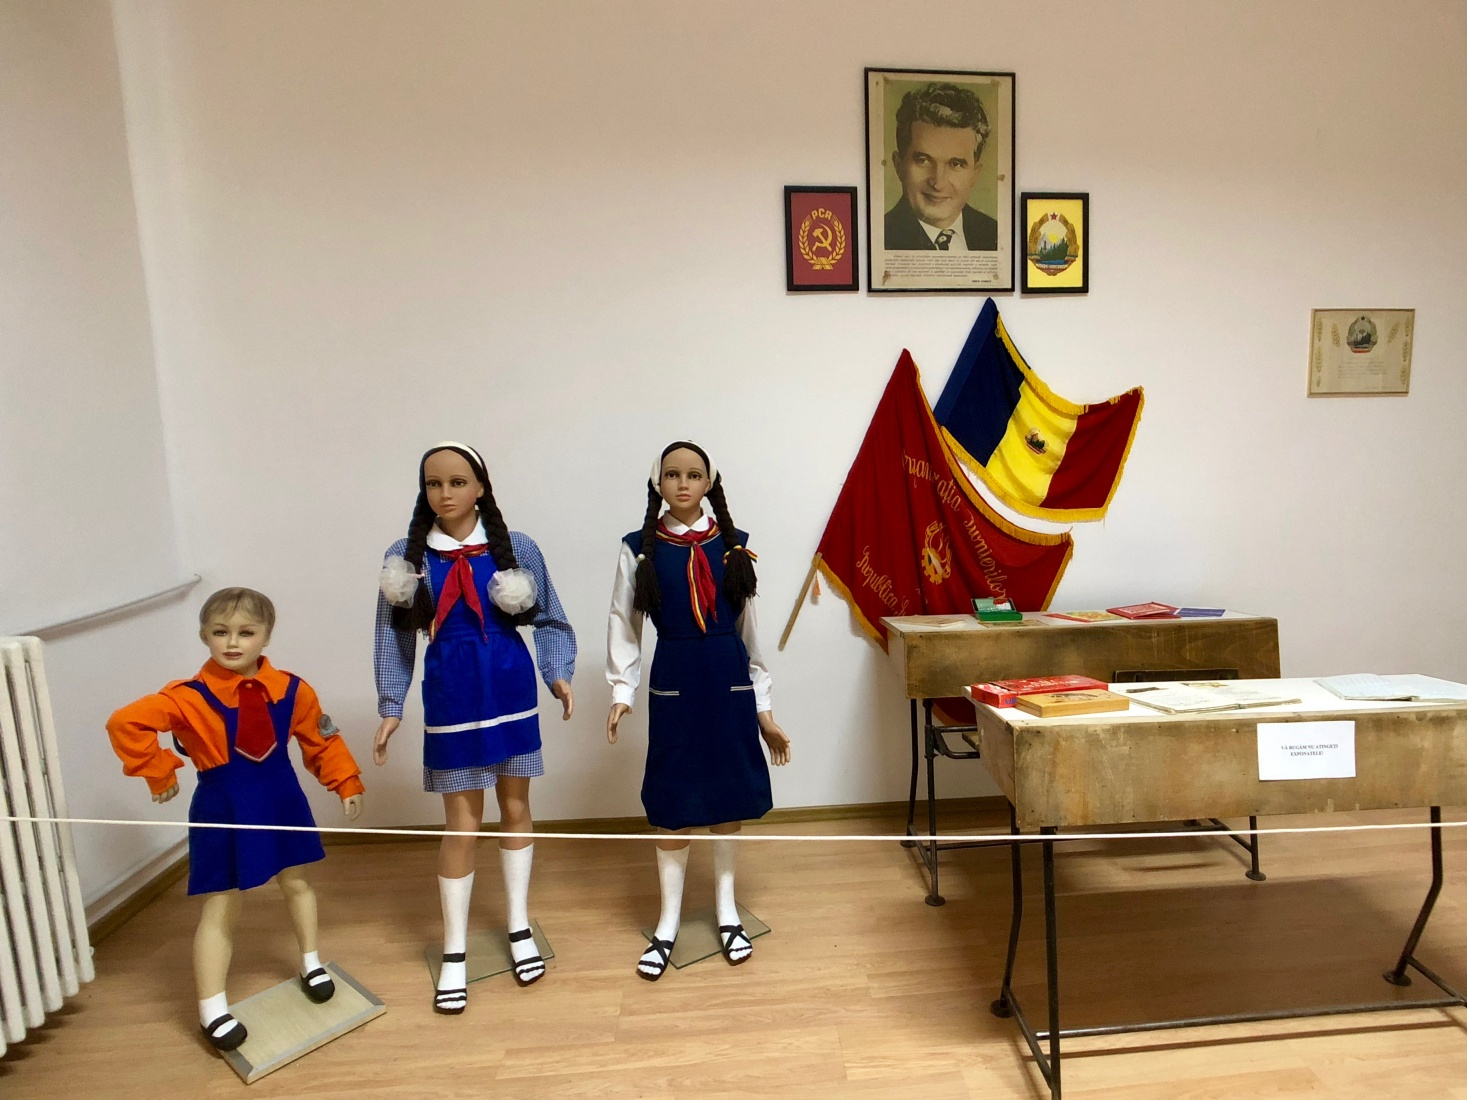 A modern day exhibit in the National History and Archaeology museum including a section about life under the dictatorship of Nicolae Ceaușescu, in Constanța, Romania.